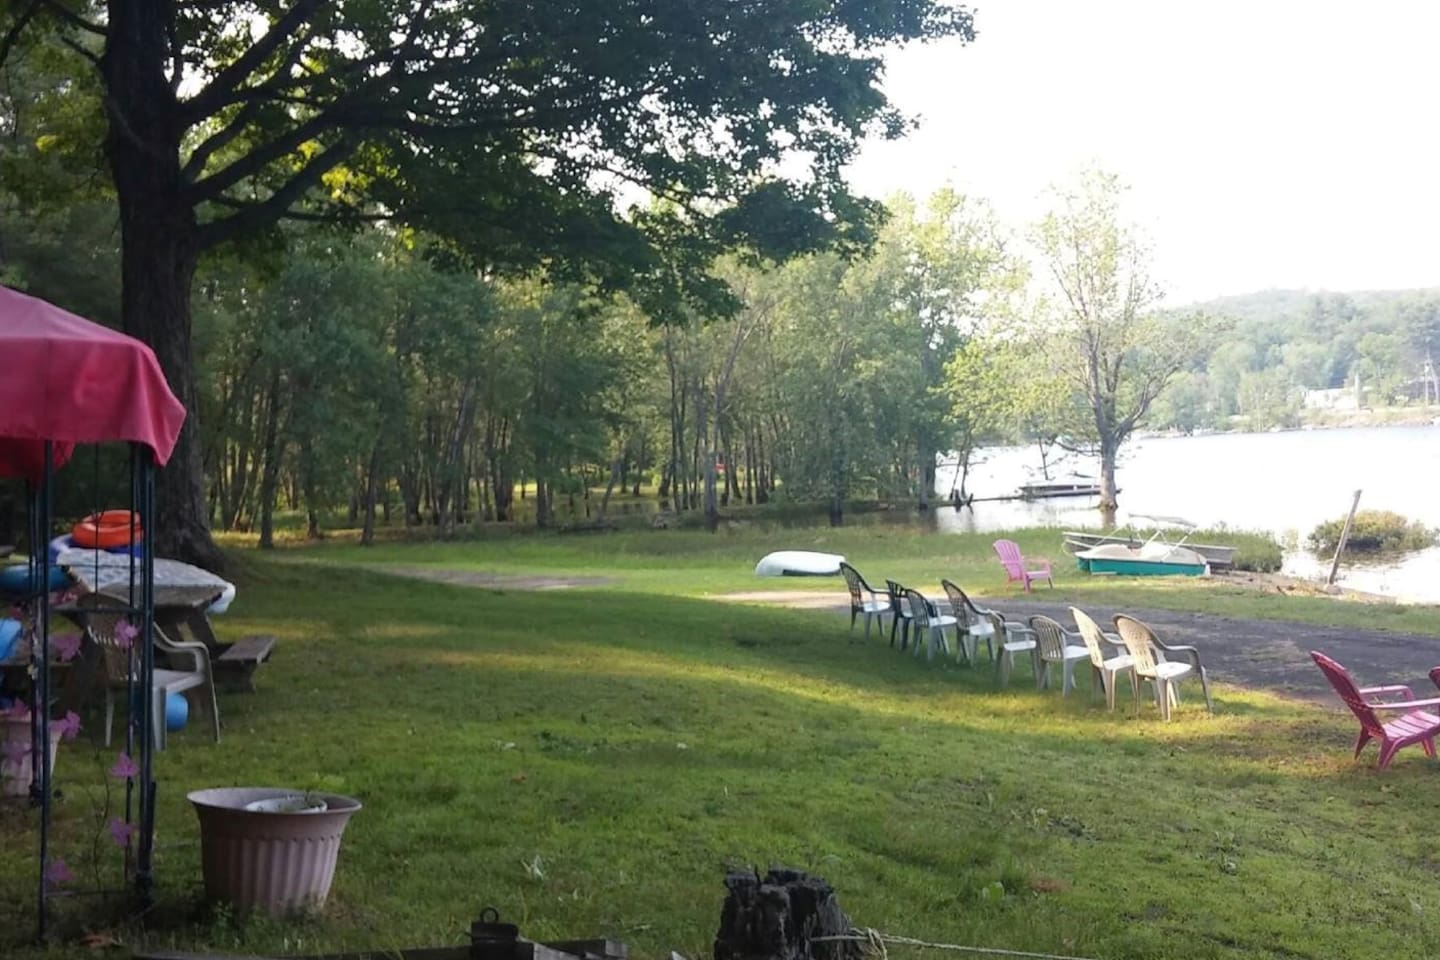 Direct Great Sacandaga Lakefront Access 435' Dock Space, too